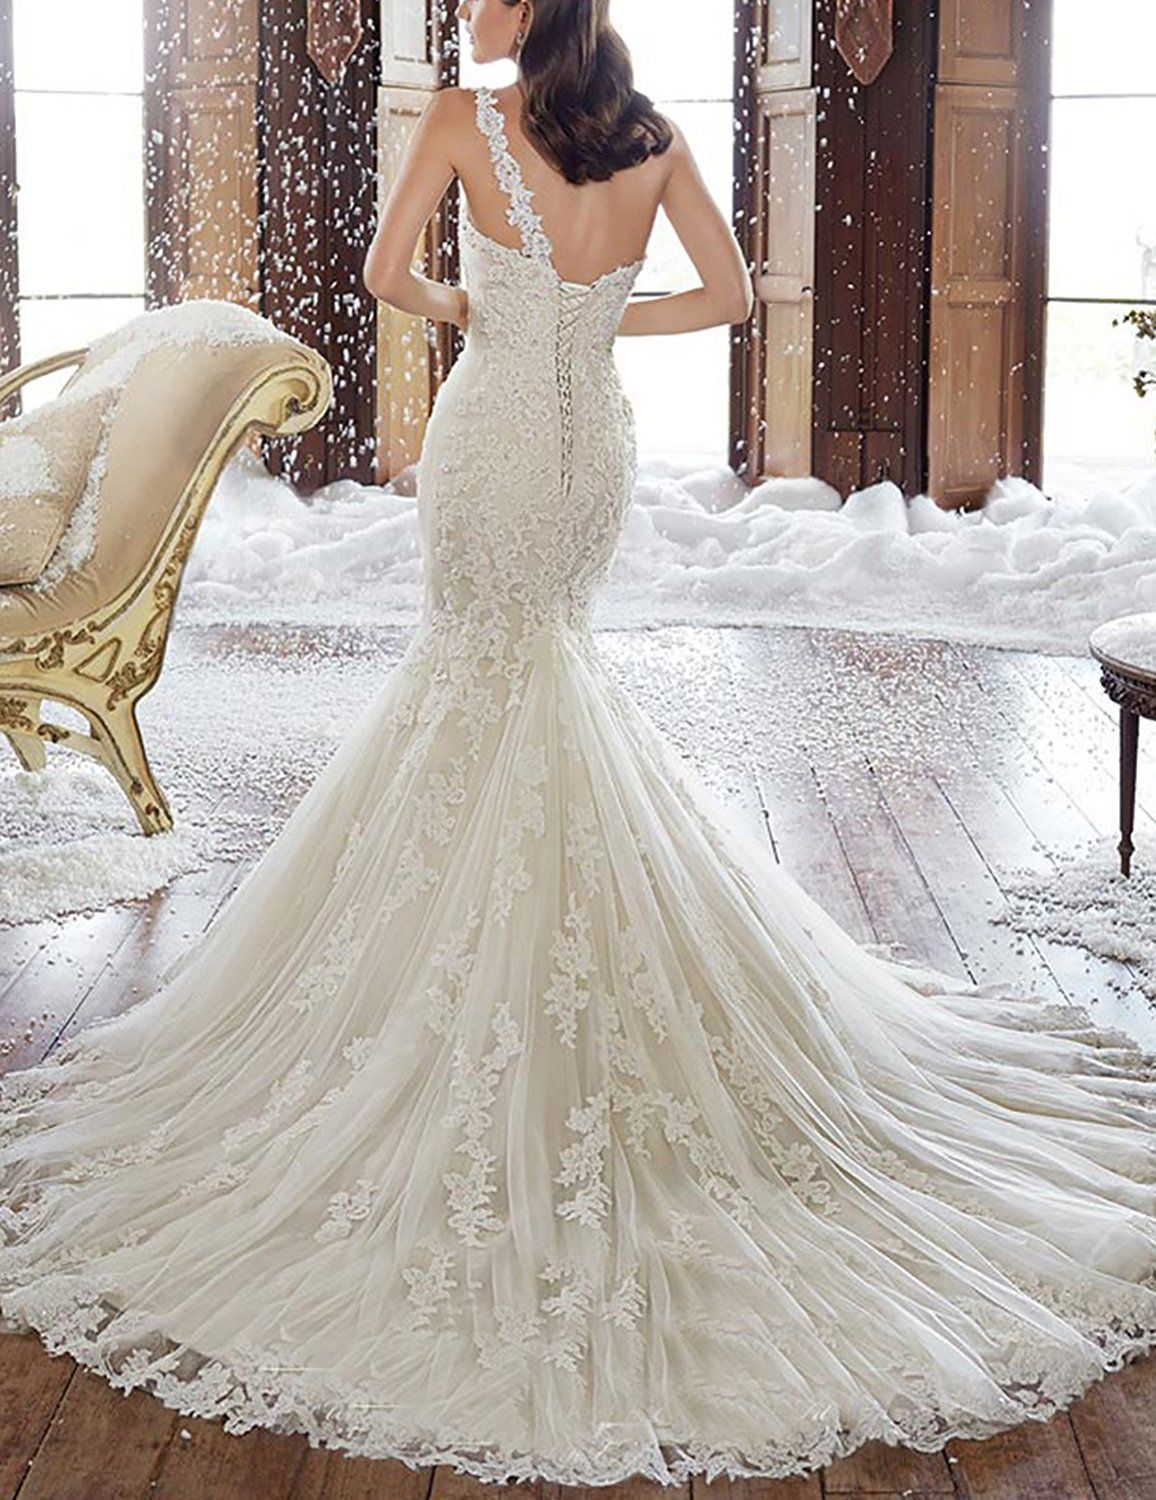 Lace Wedding Dress 2018 - OYISHA Off Shoulder Lace Mermaid Wedding ...